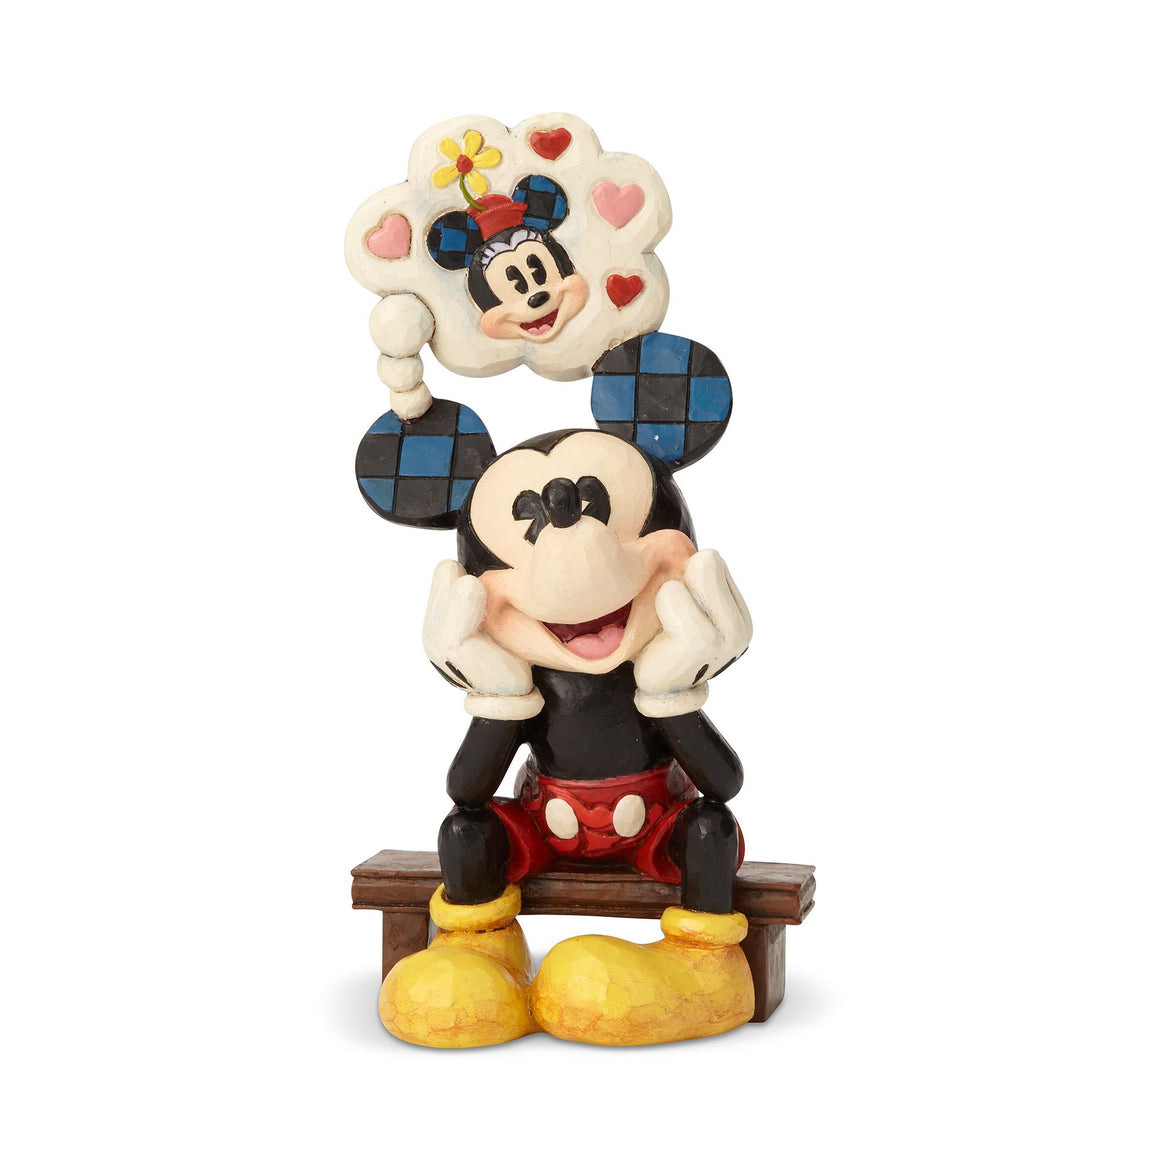 Thinking of You - Mickey Mouse Figurine - Disney Traditions by Jim Shore